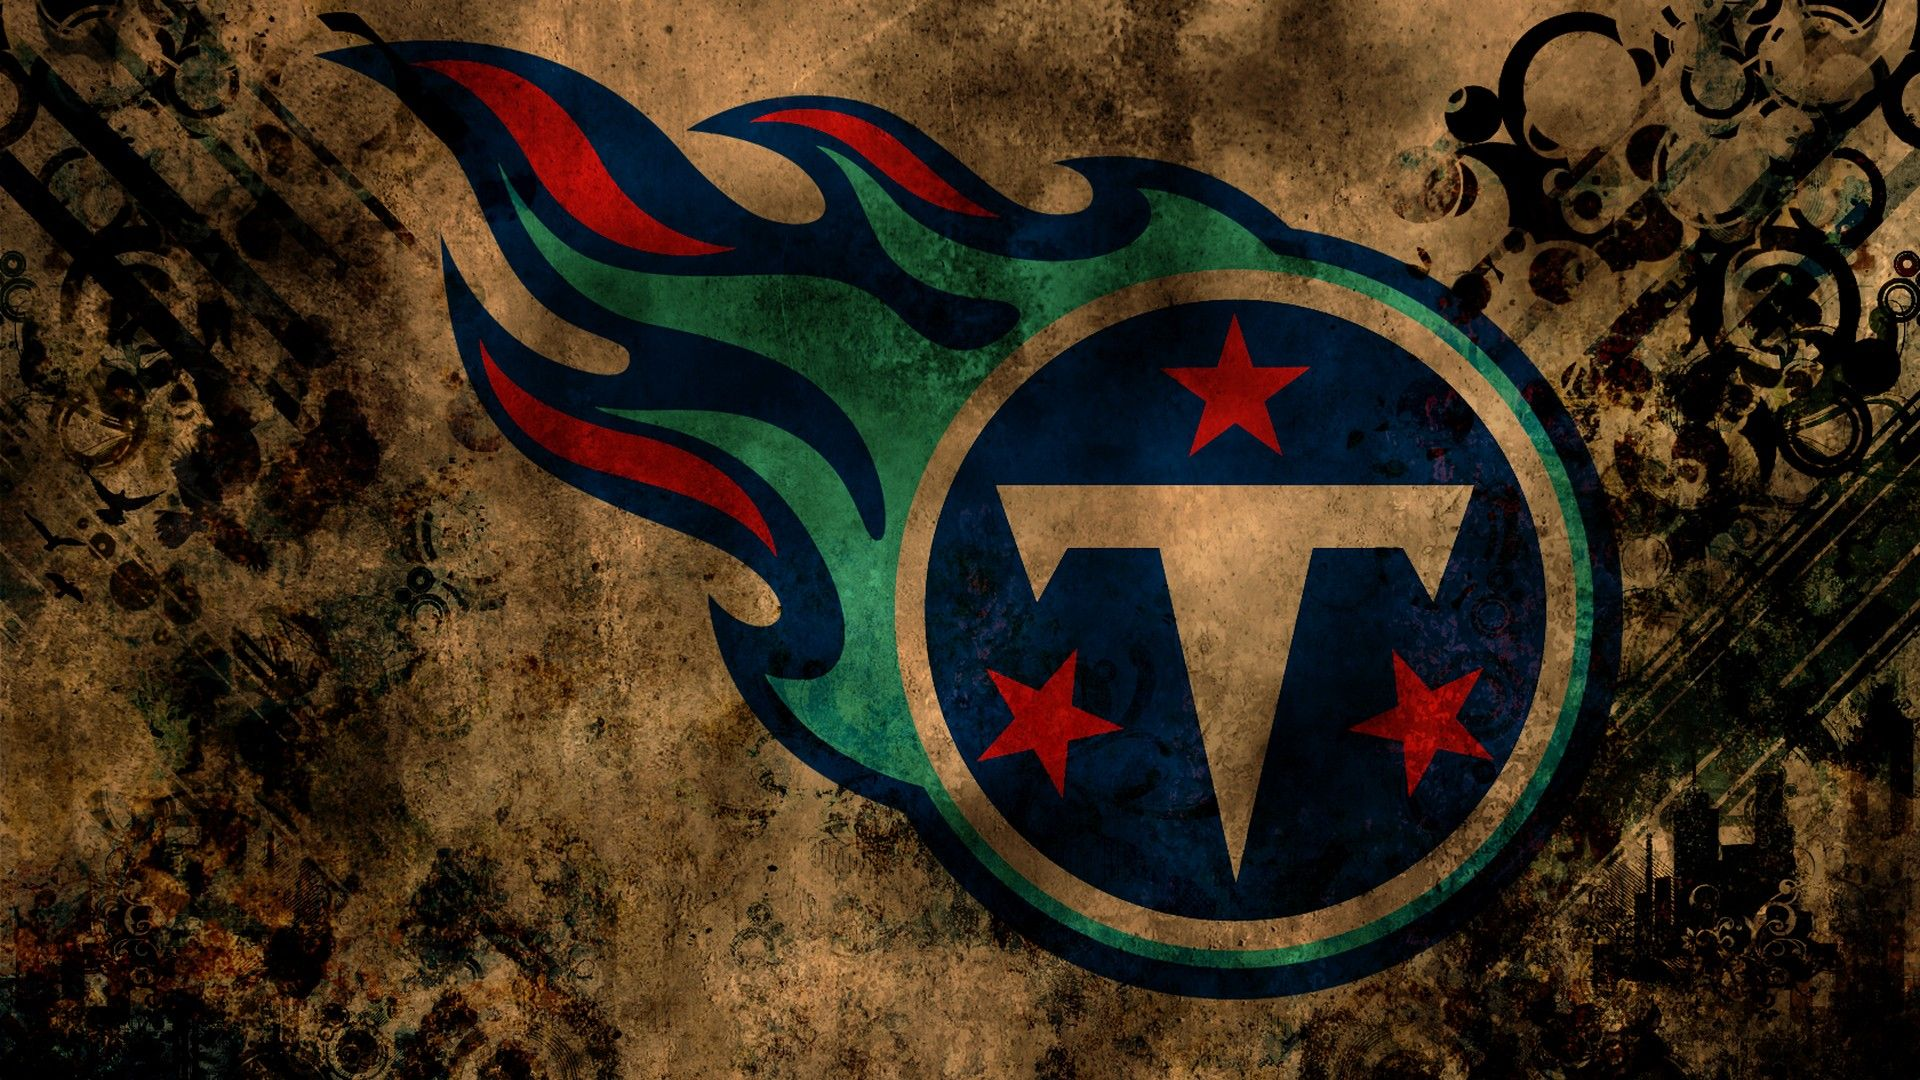 Tennessee Titans HD Wallpapers Tennessee titans